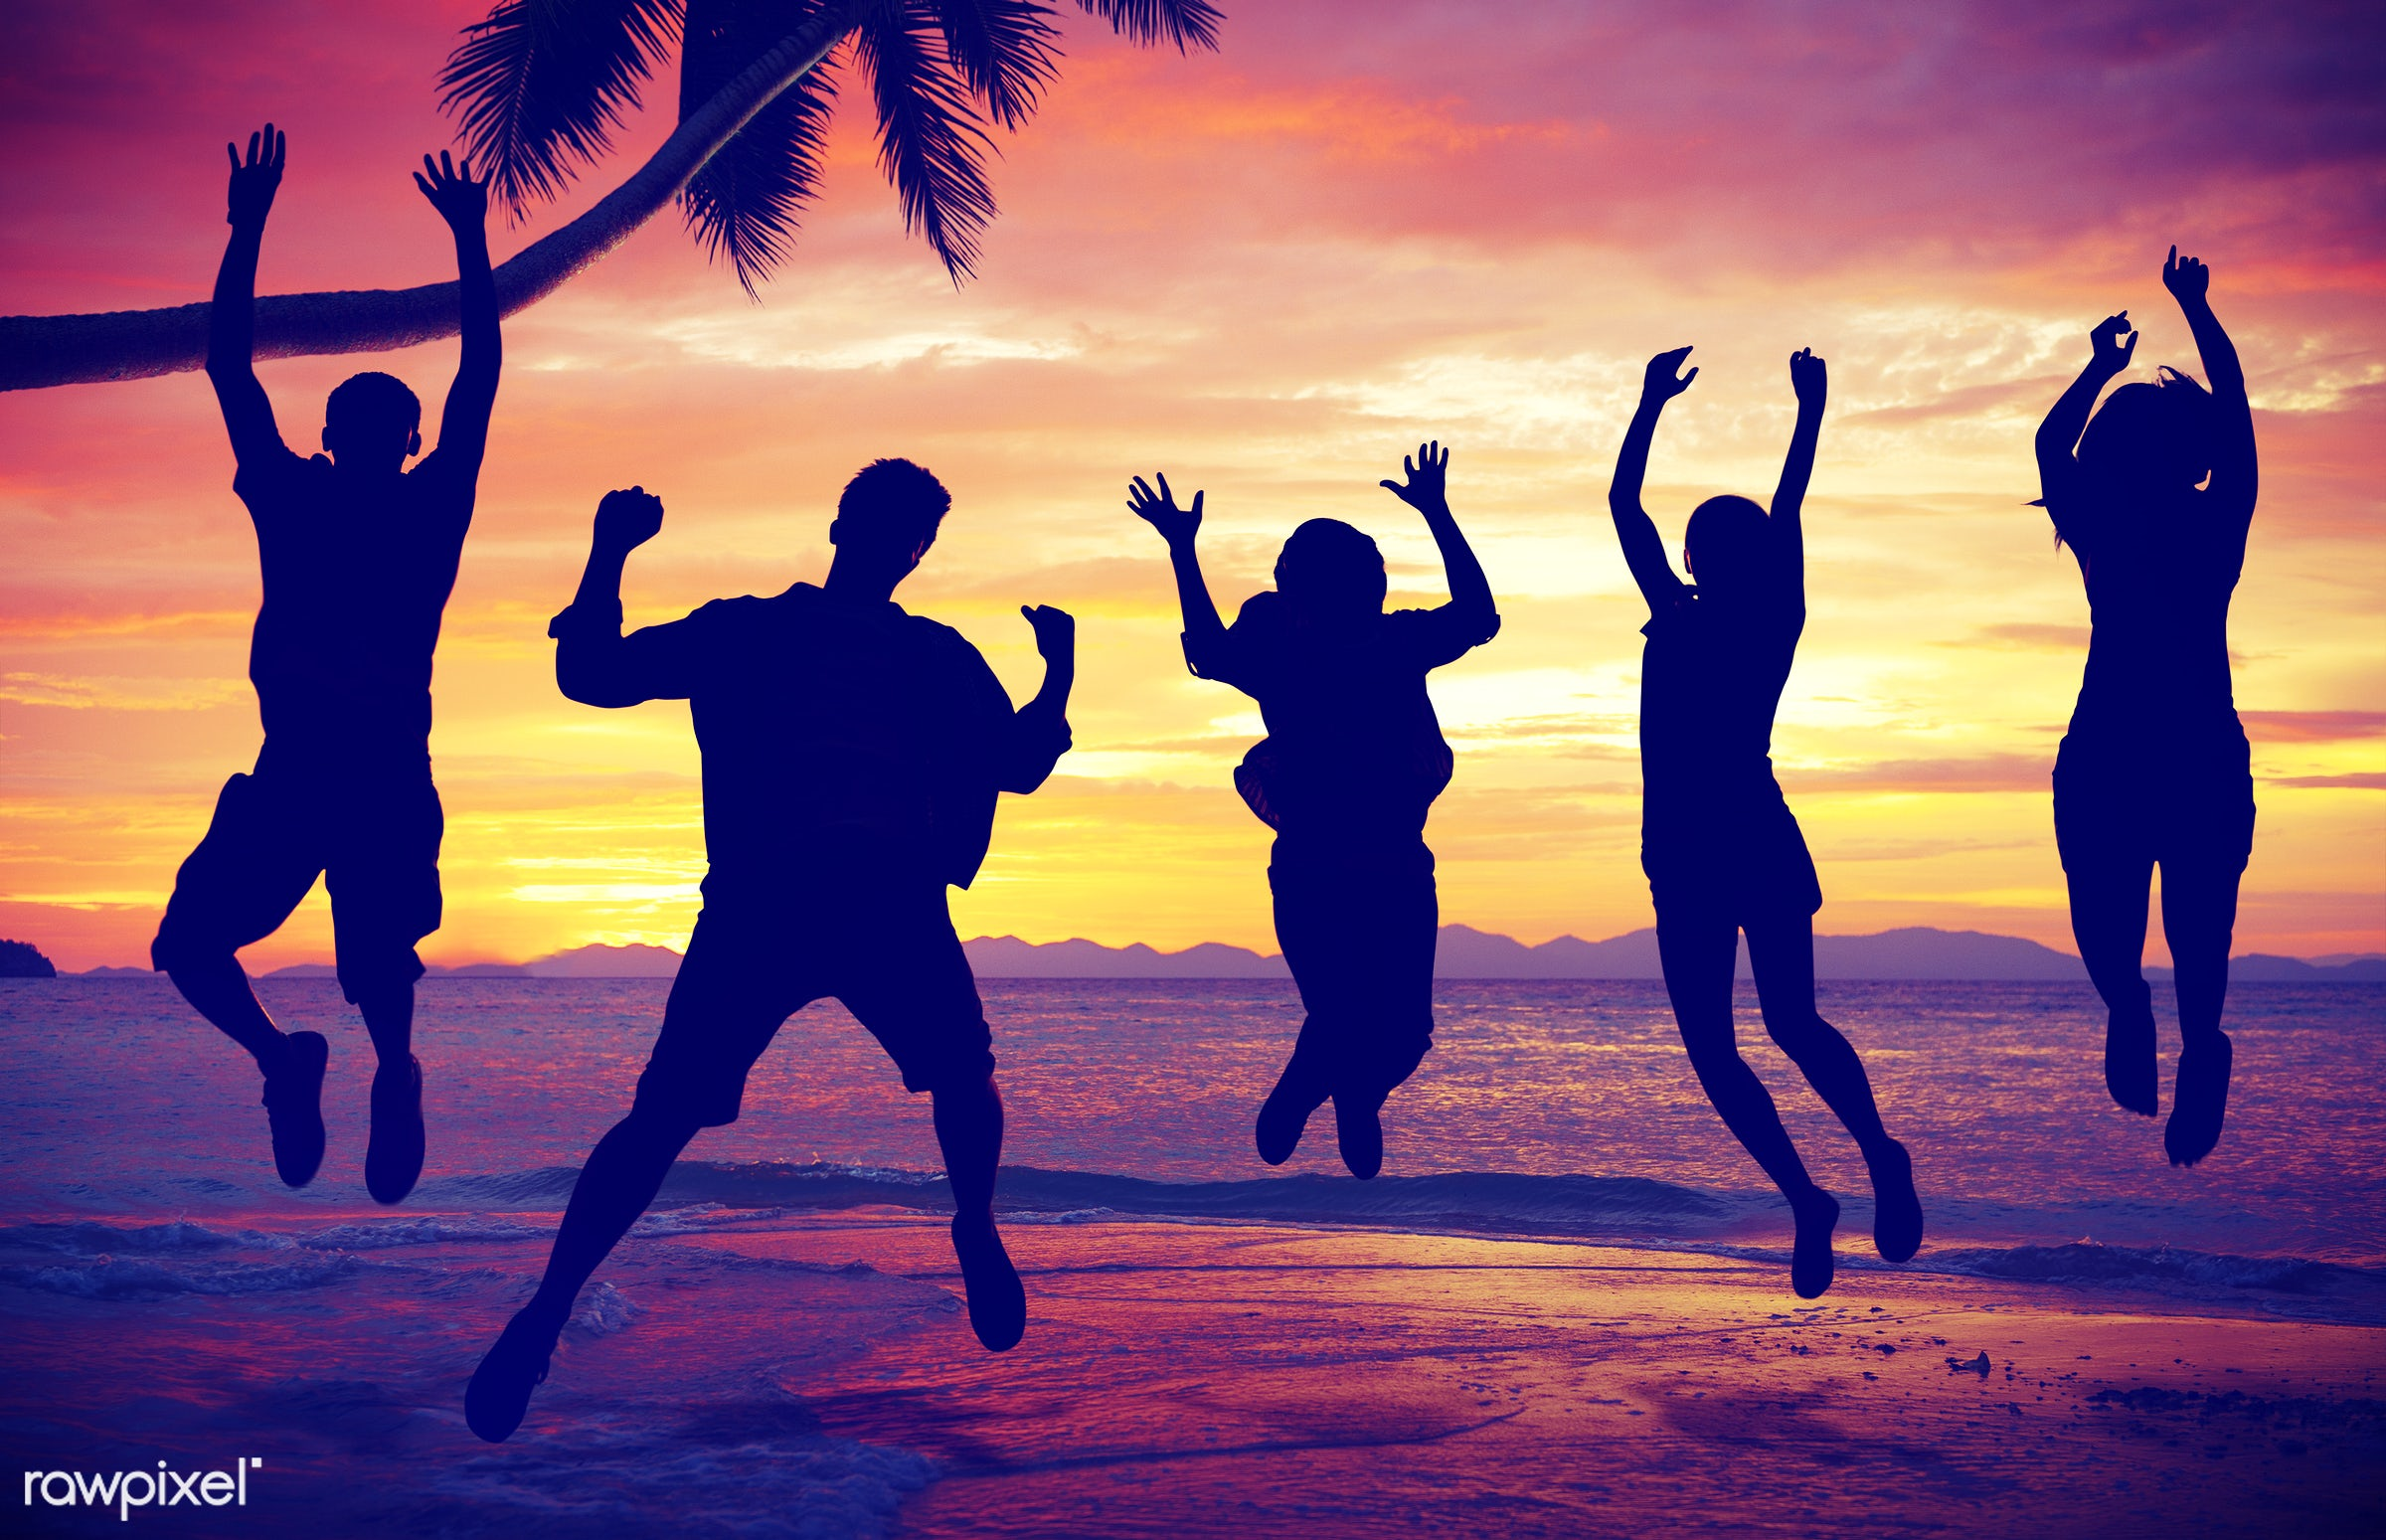 lifestyles, arms outstretched, arms raised, back lit, beach, celebration, cheerful, child, childhood, children, cloud,...